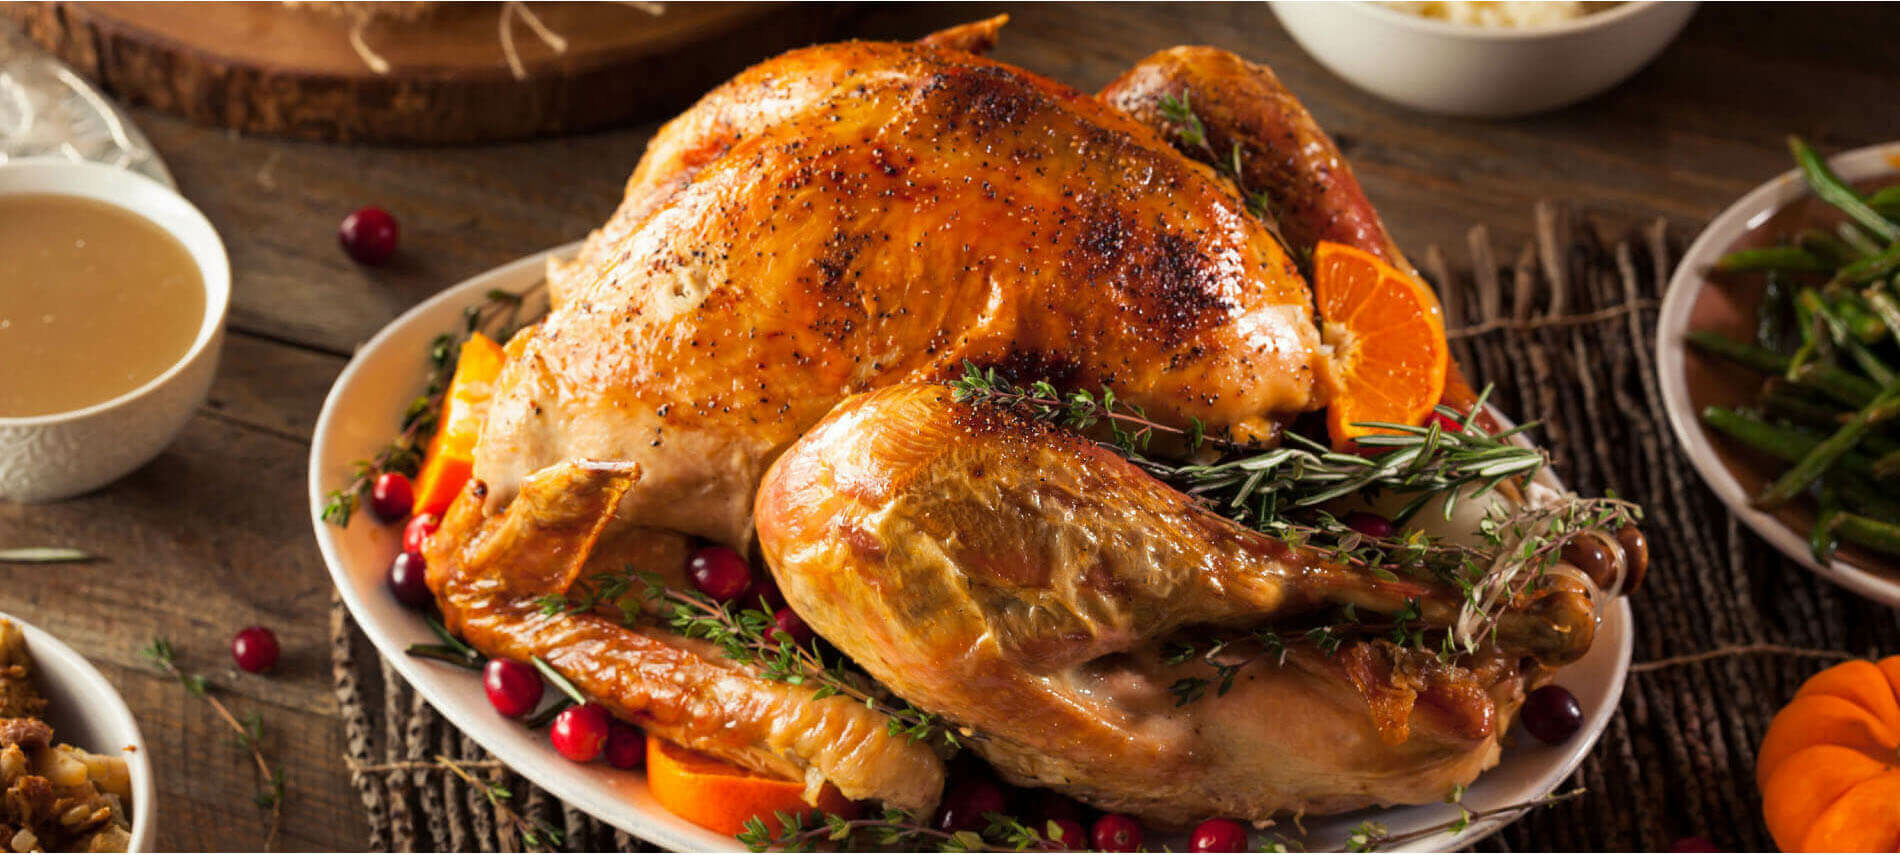 Golden roasted turkey with red cranberries, green herbs, brown gravy, green beans, and orange carrots